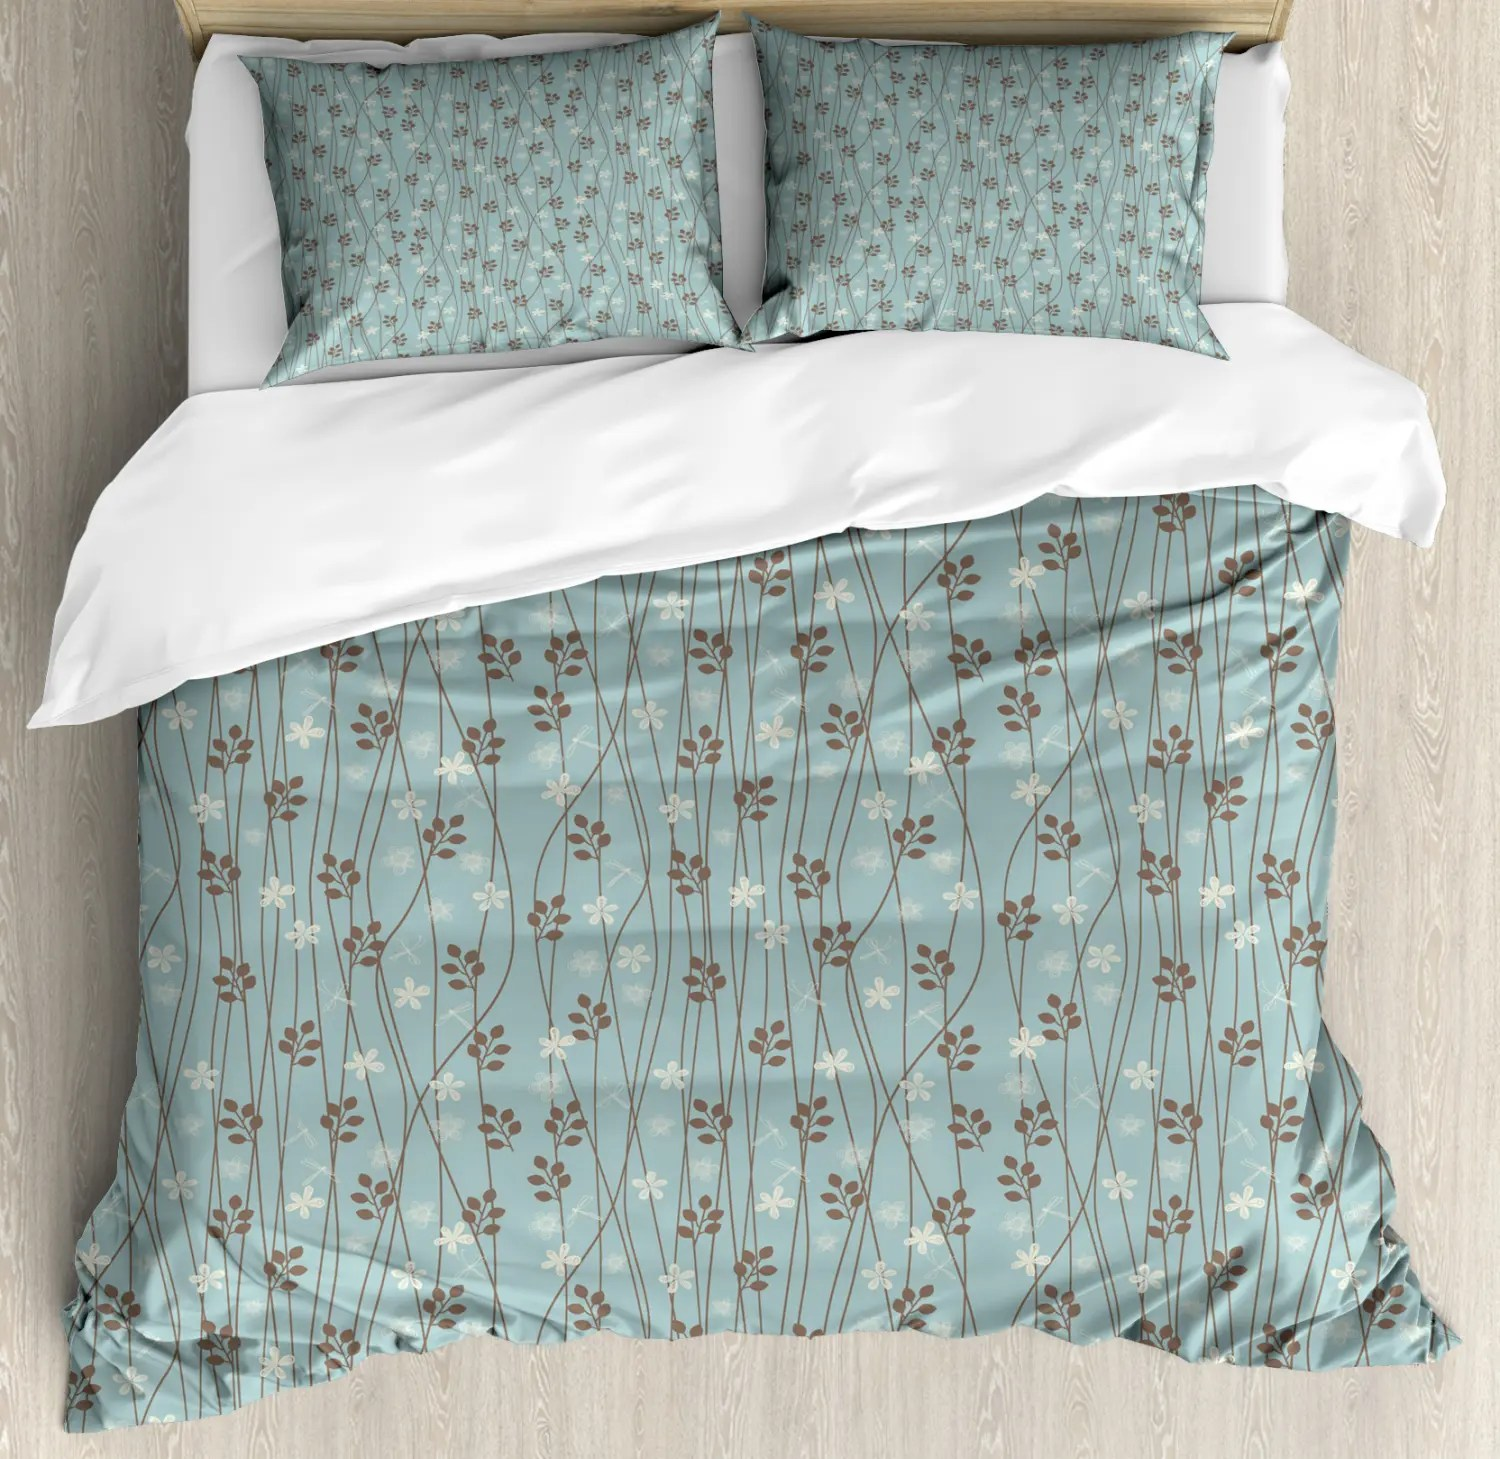 Detektiv Conan Bettwäsche Vintage Duvet Cover Set With Shams Floral Rustic Print Pillow